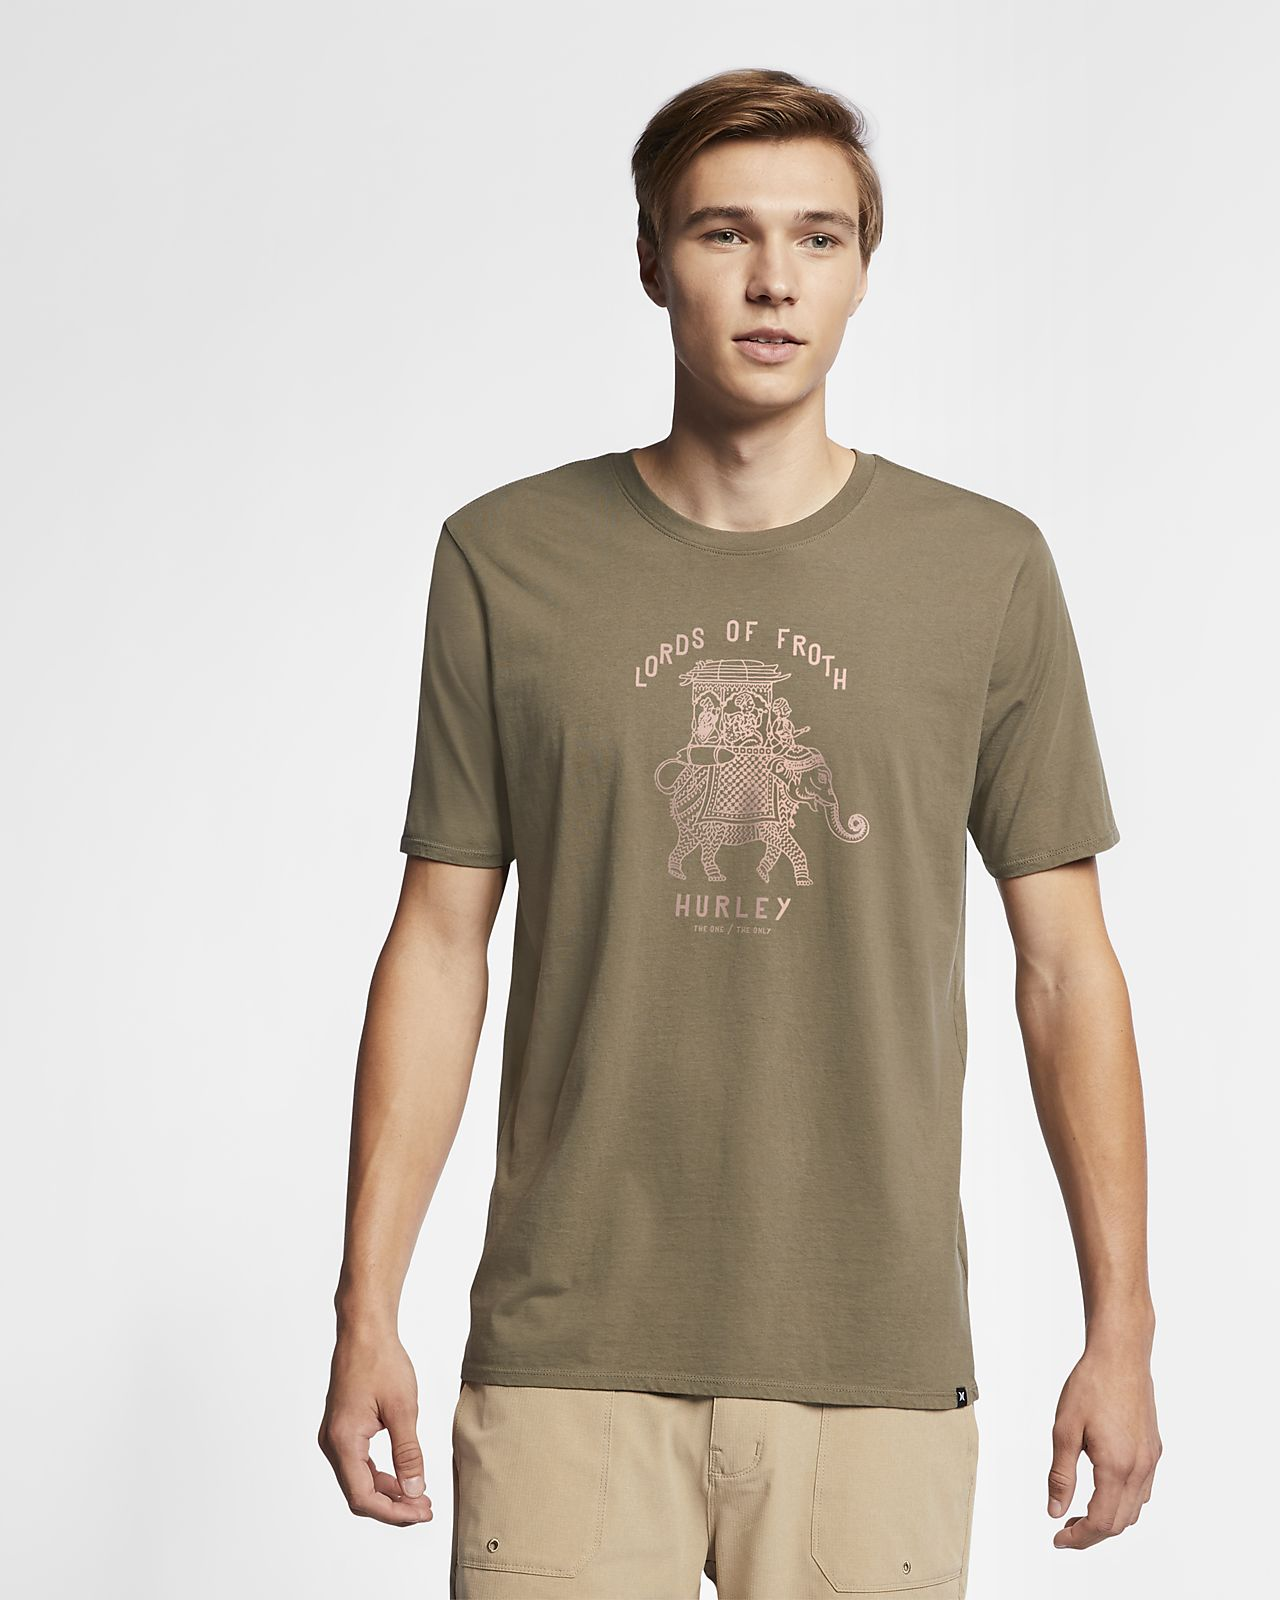 Hurley Lords Of Froth  Men's T-Shirt